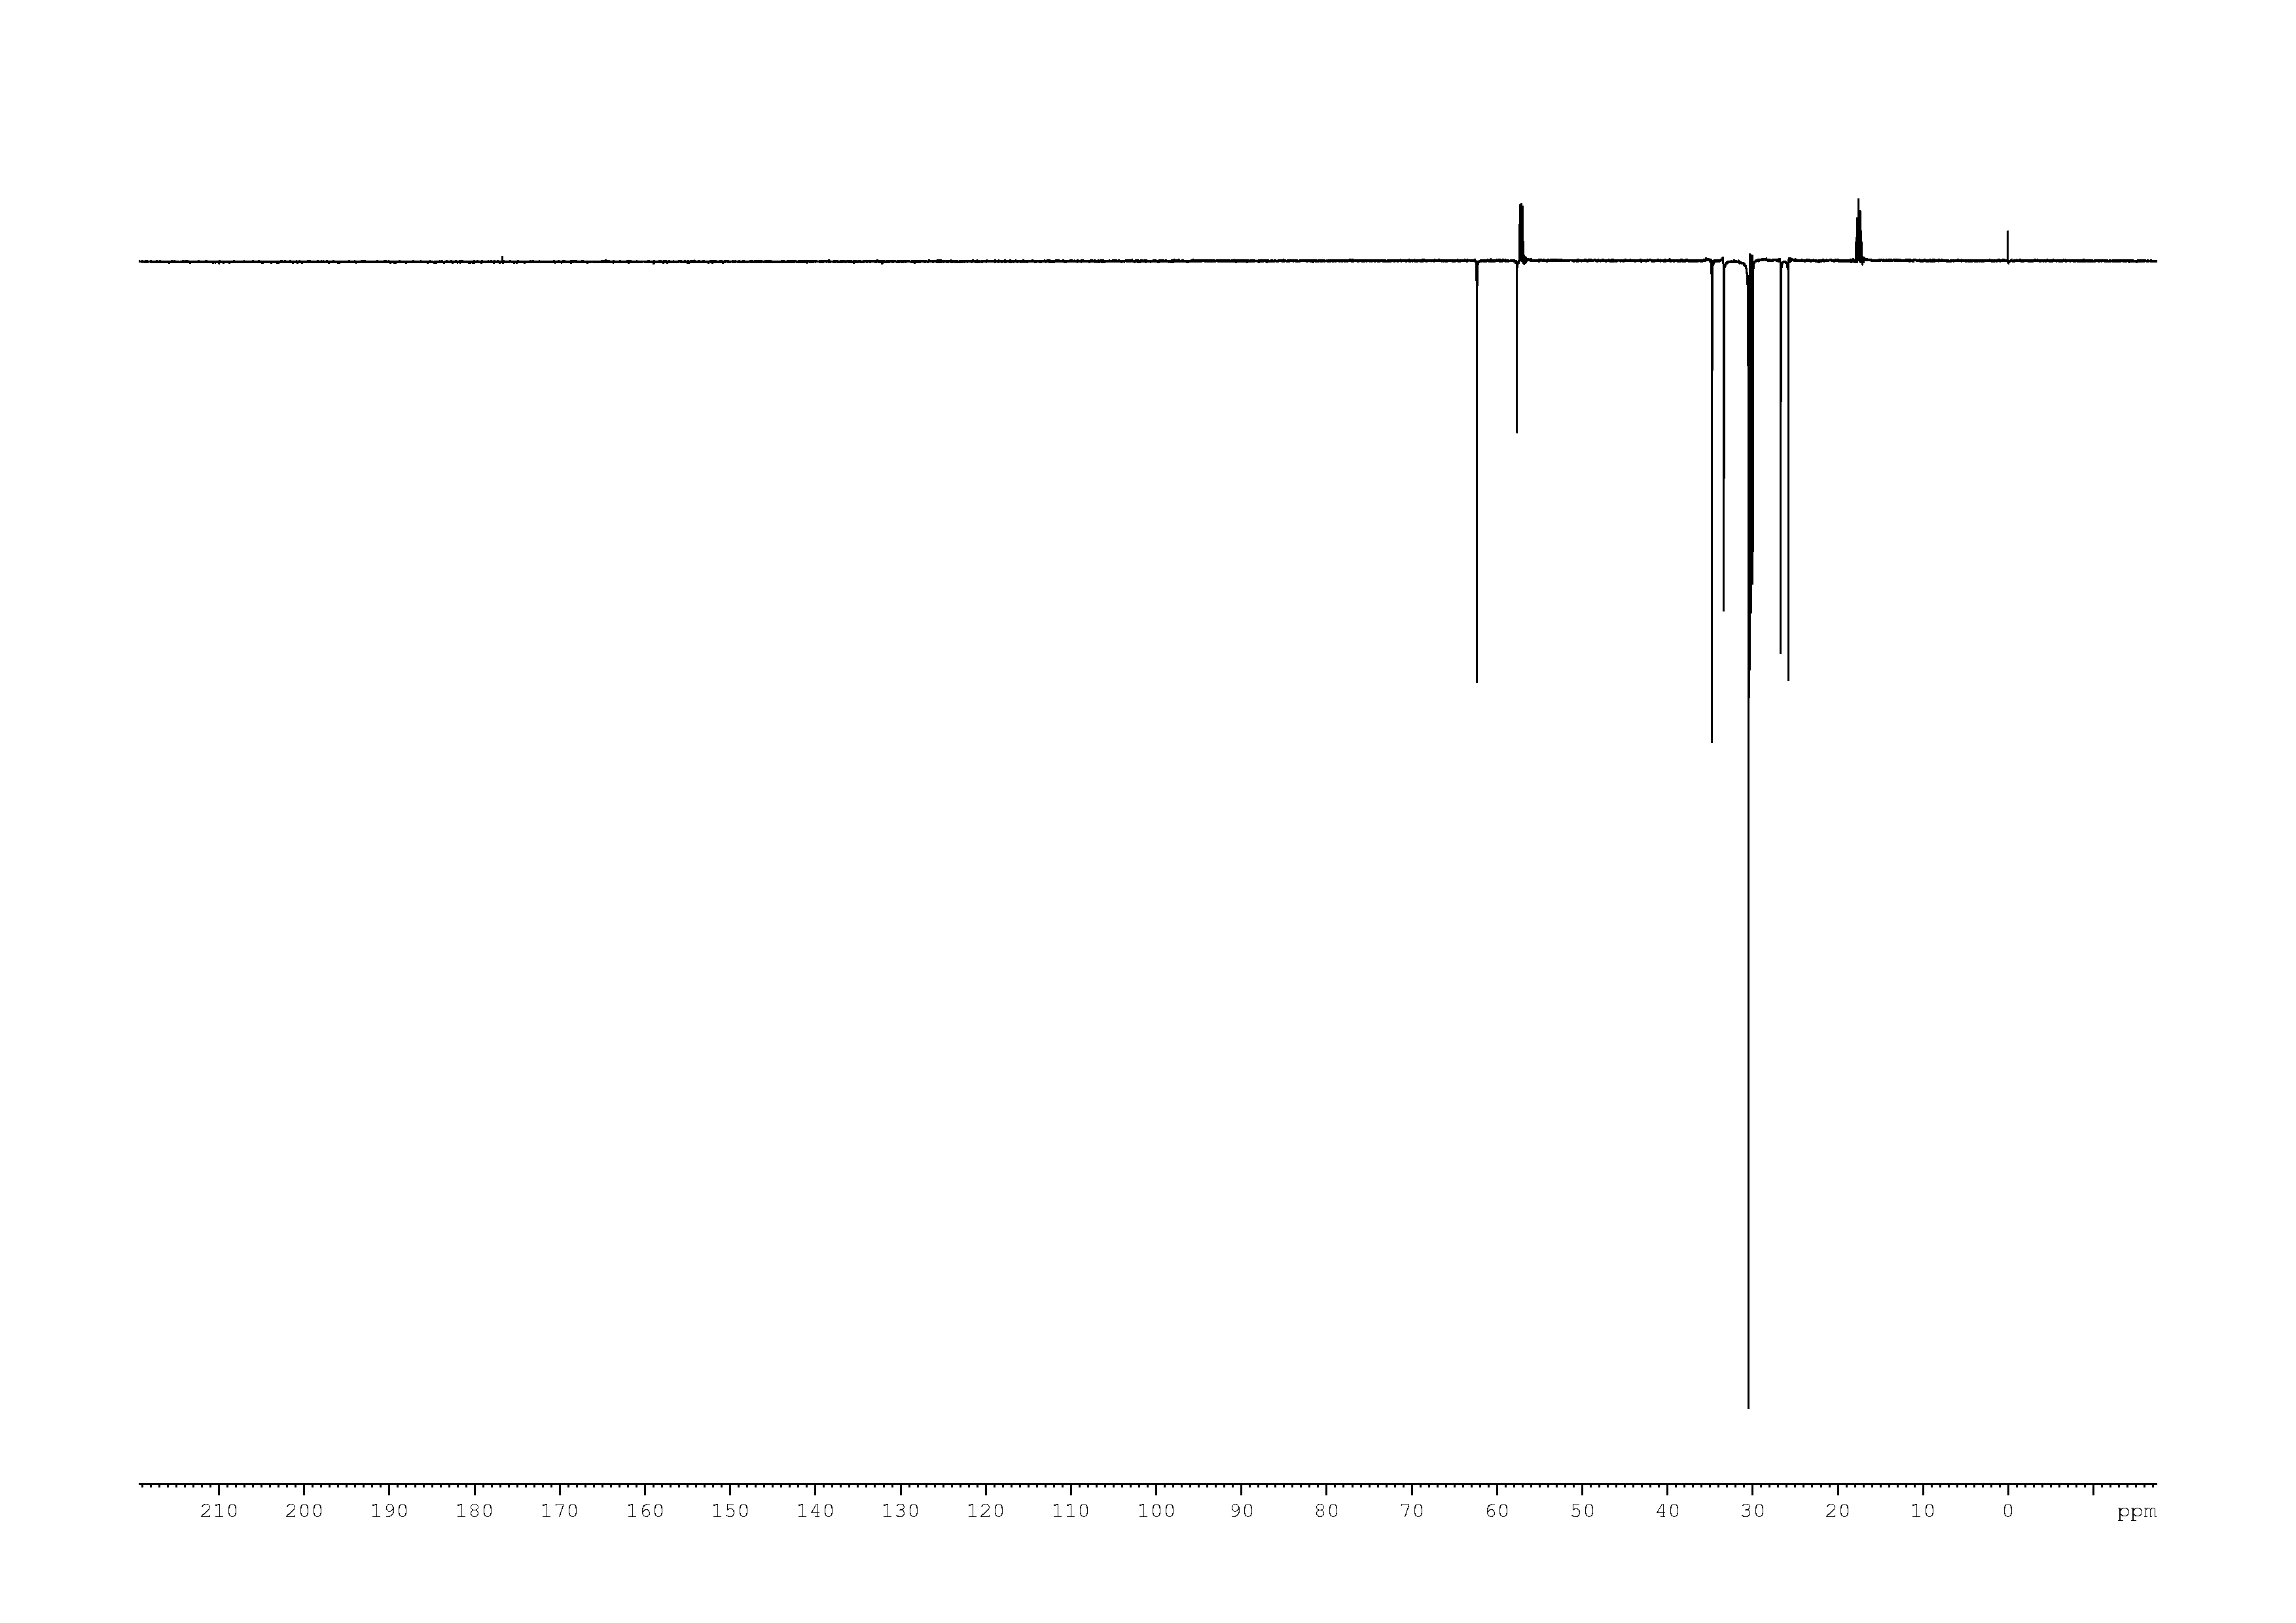 1D DEPT135, n/a spectrum for 16-hydroxyhexadecanoic acid